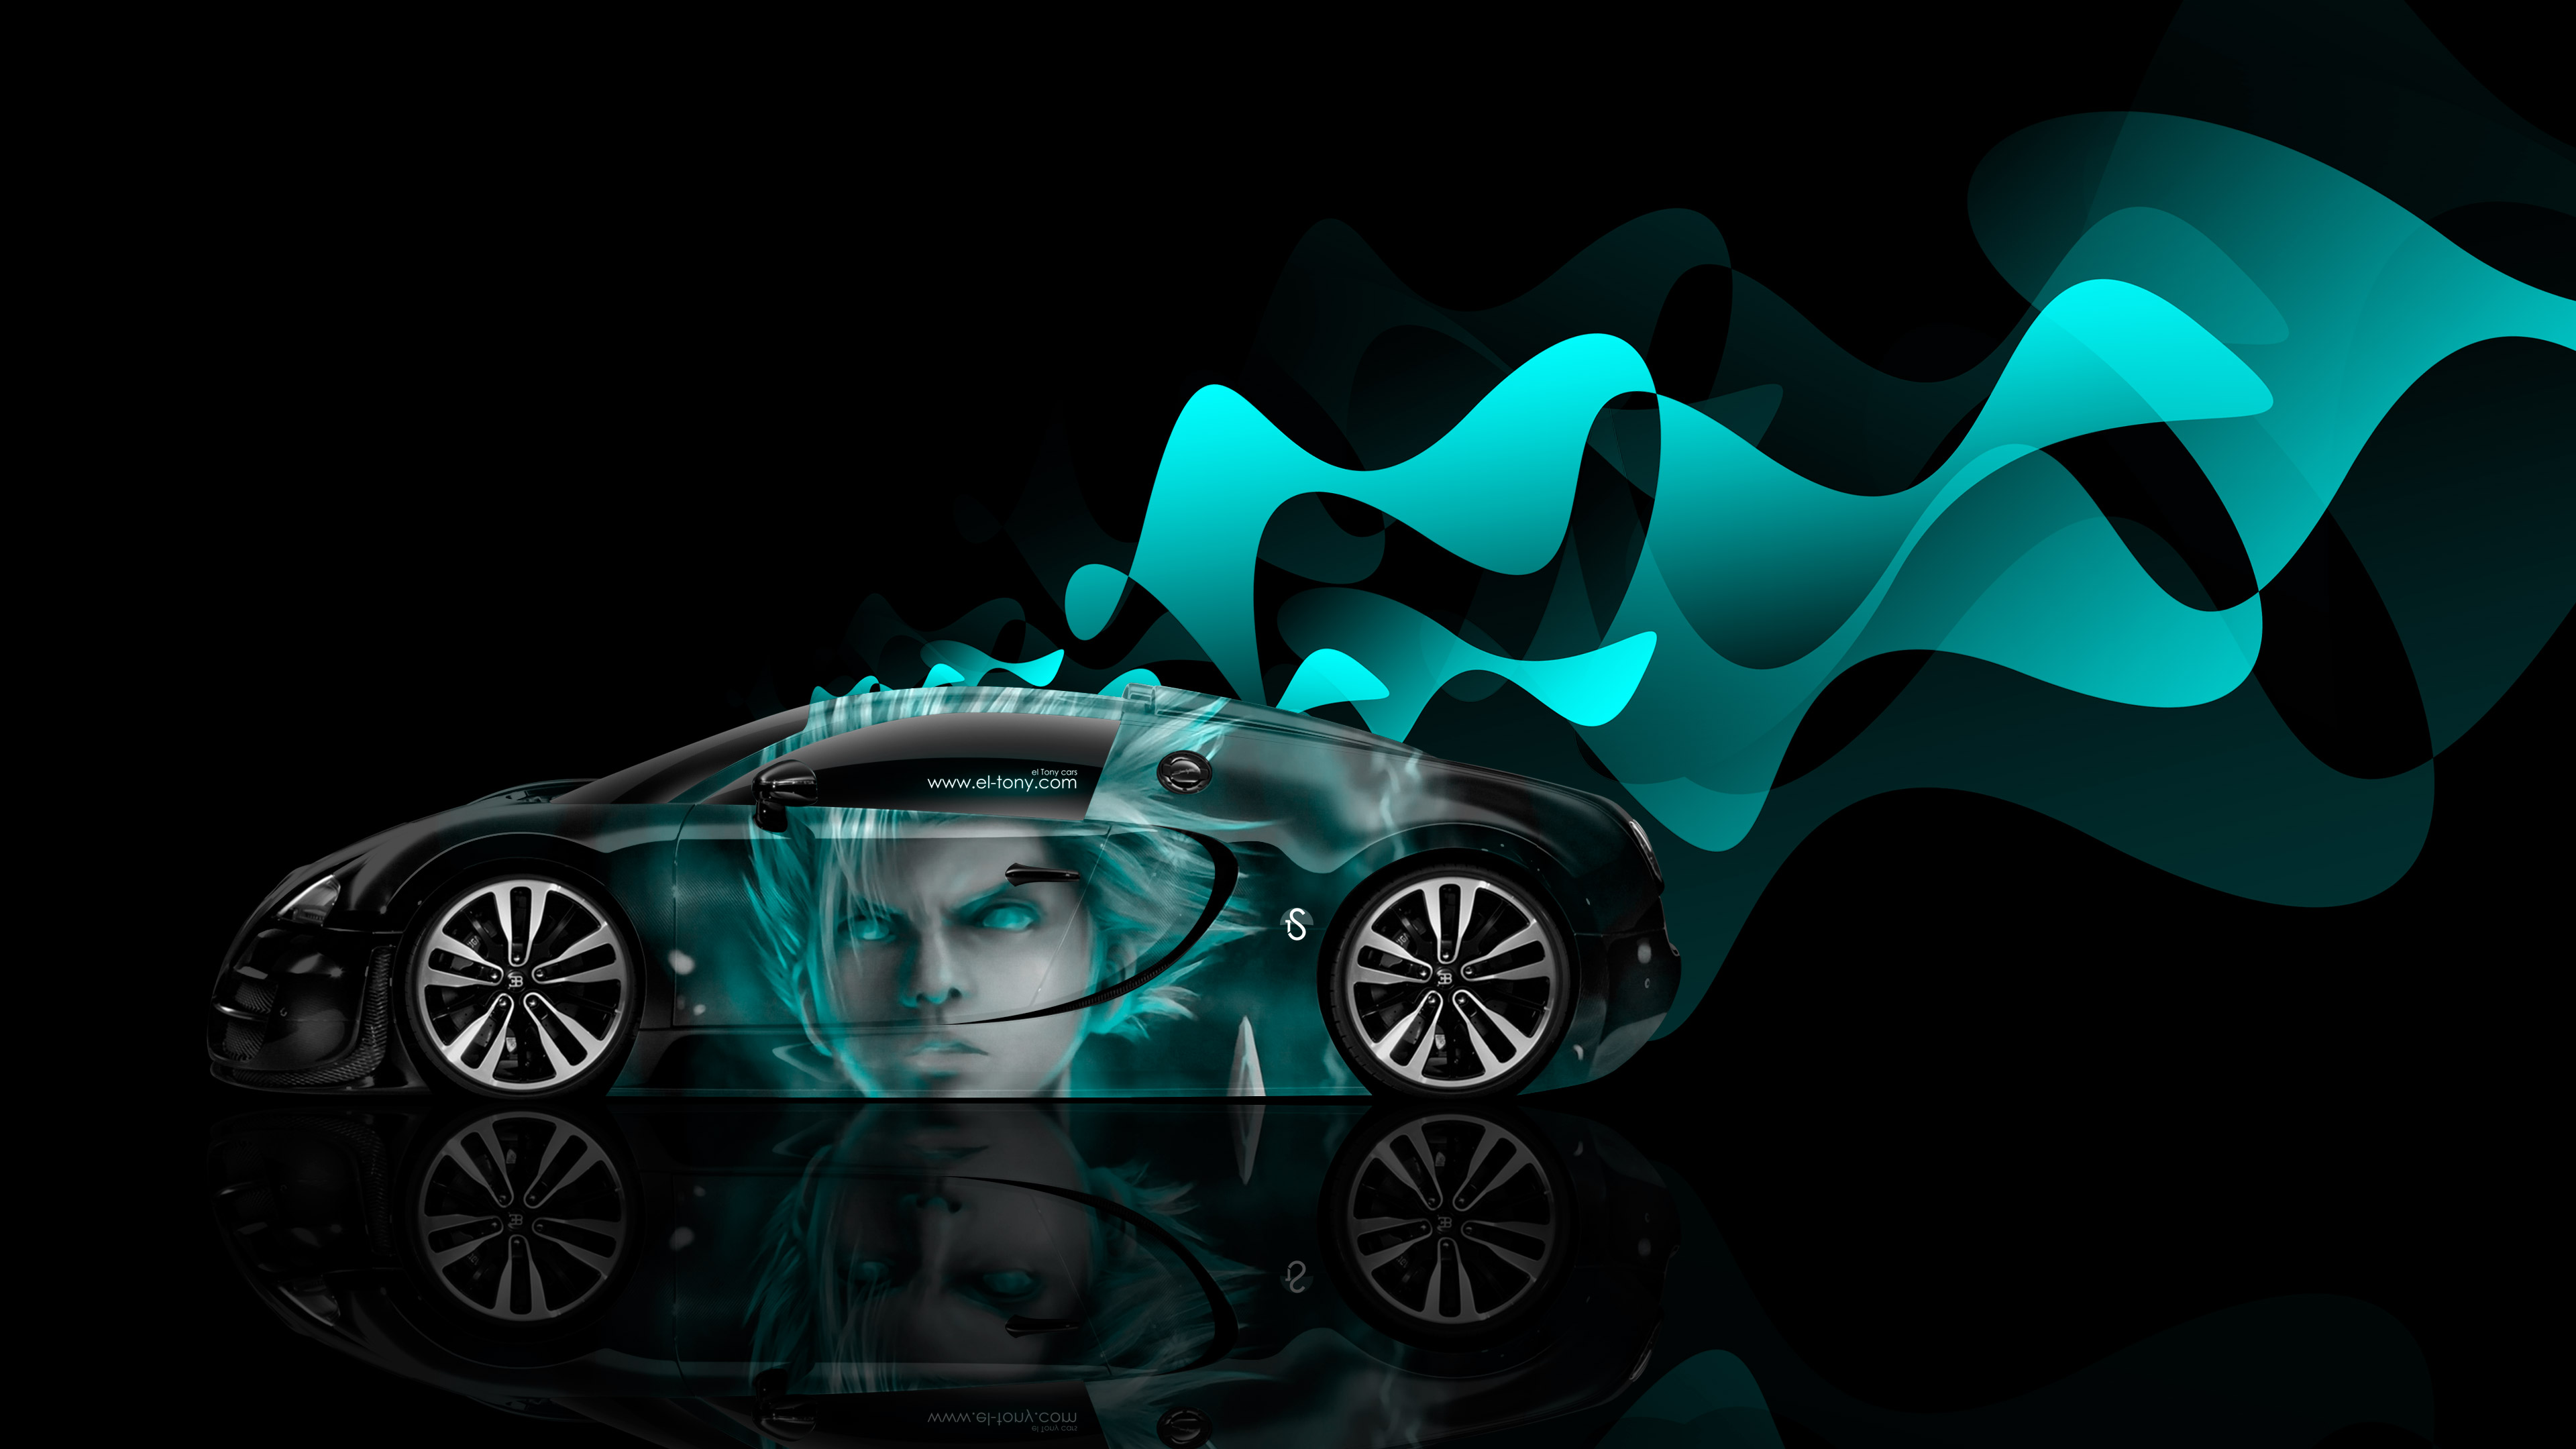 Veyron side anime aerography car 2014 fantasy azure neon effects